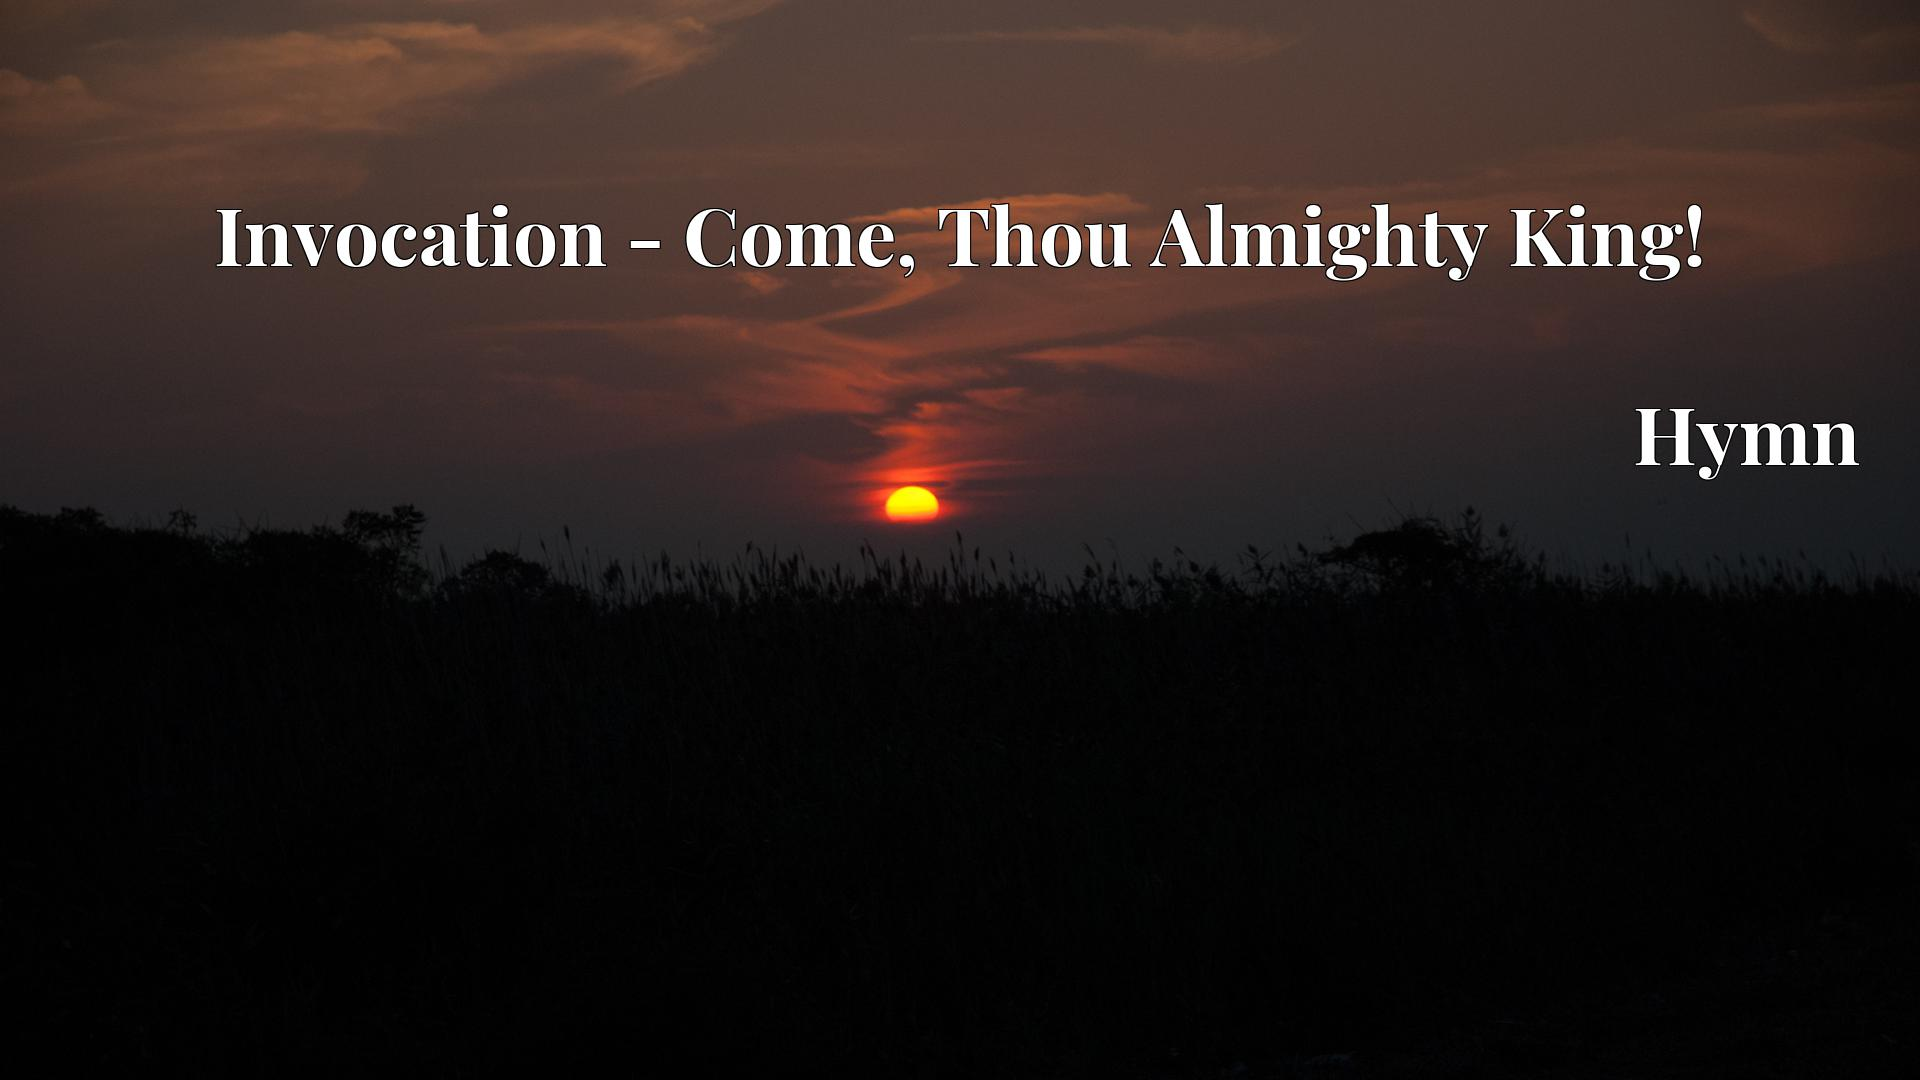 Invocation - Come, Thou Almighty King! - Hymn